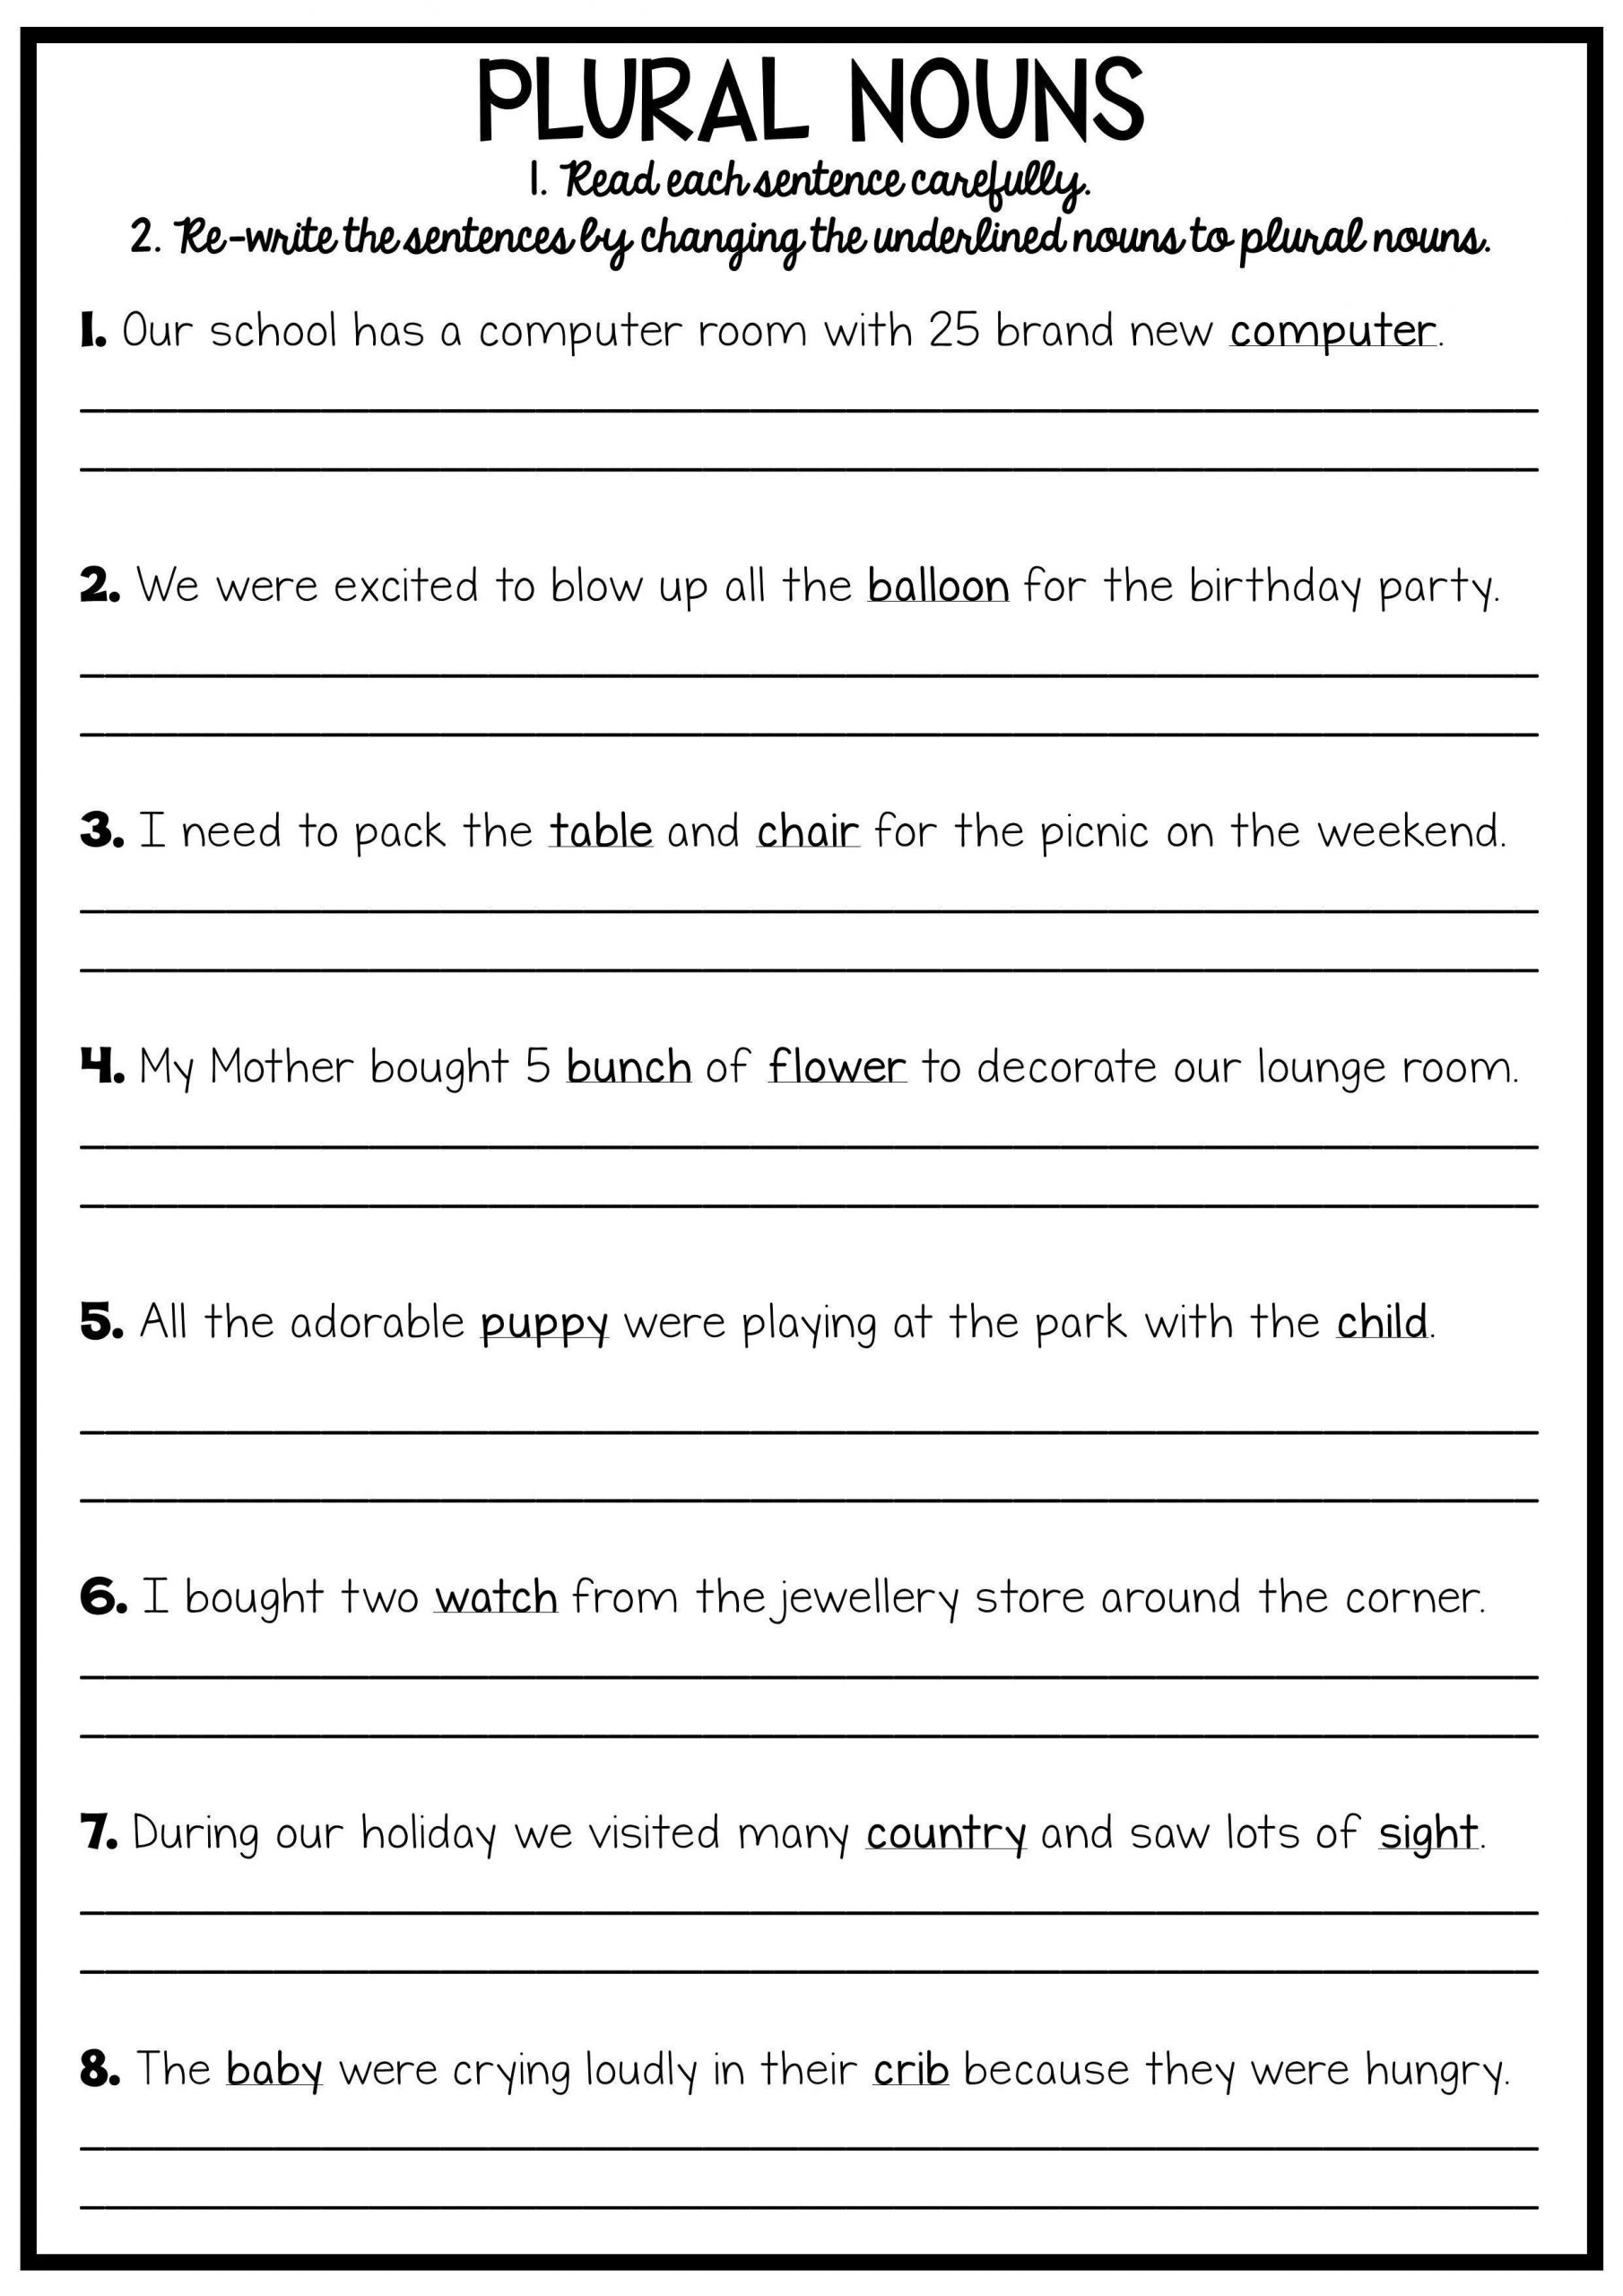 Complete Sentences Worksheets 3rd Grade Writing Worksheets for 3rd Grade